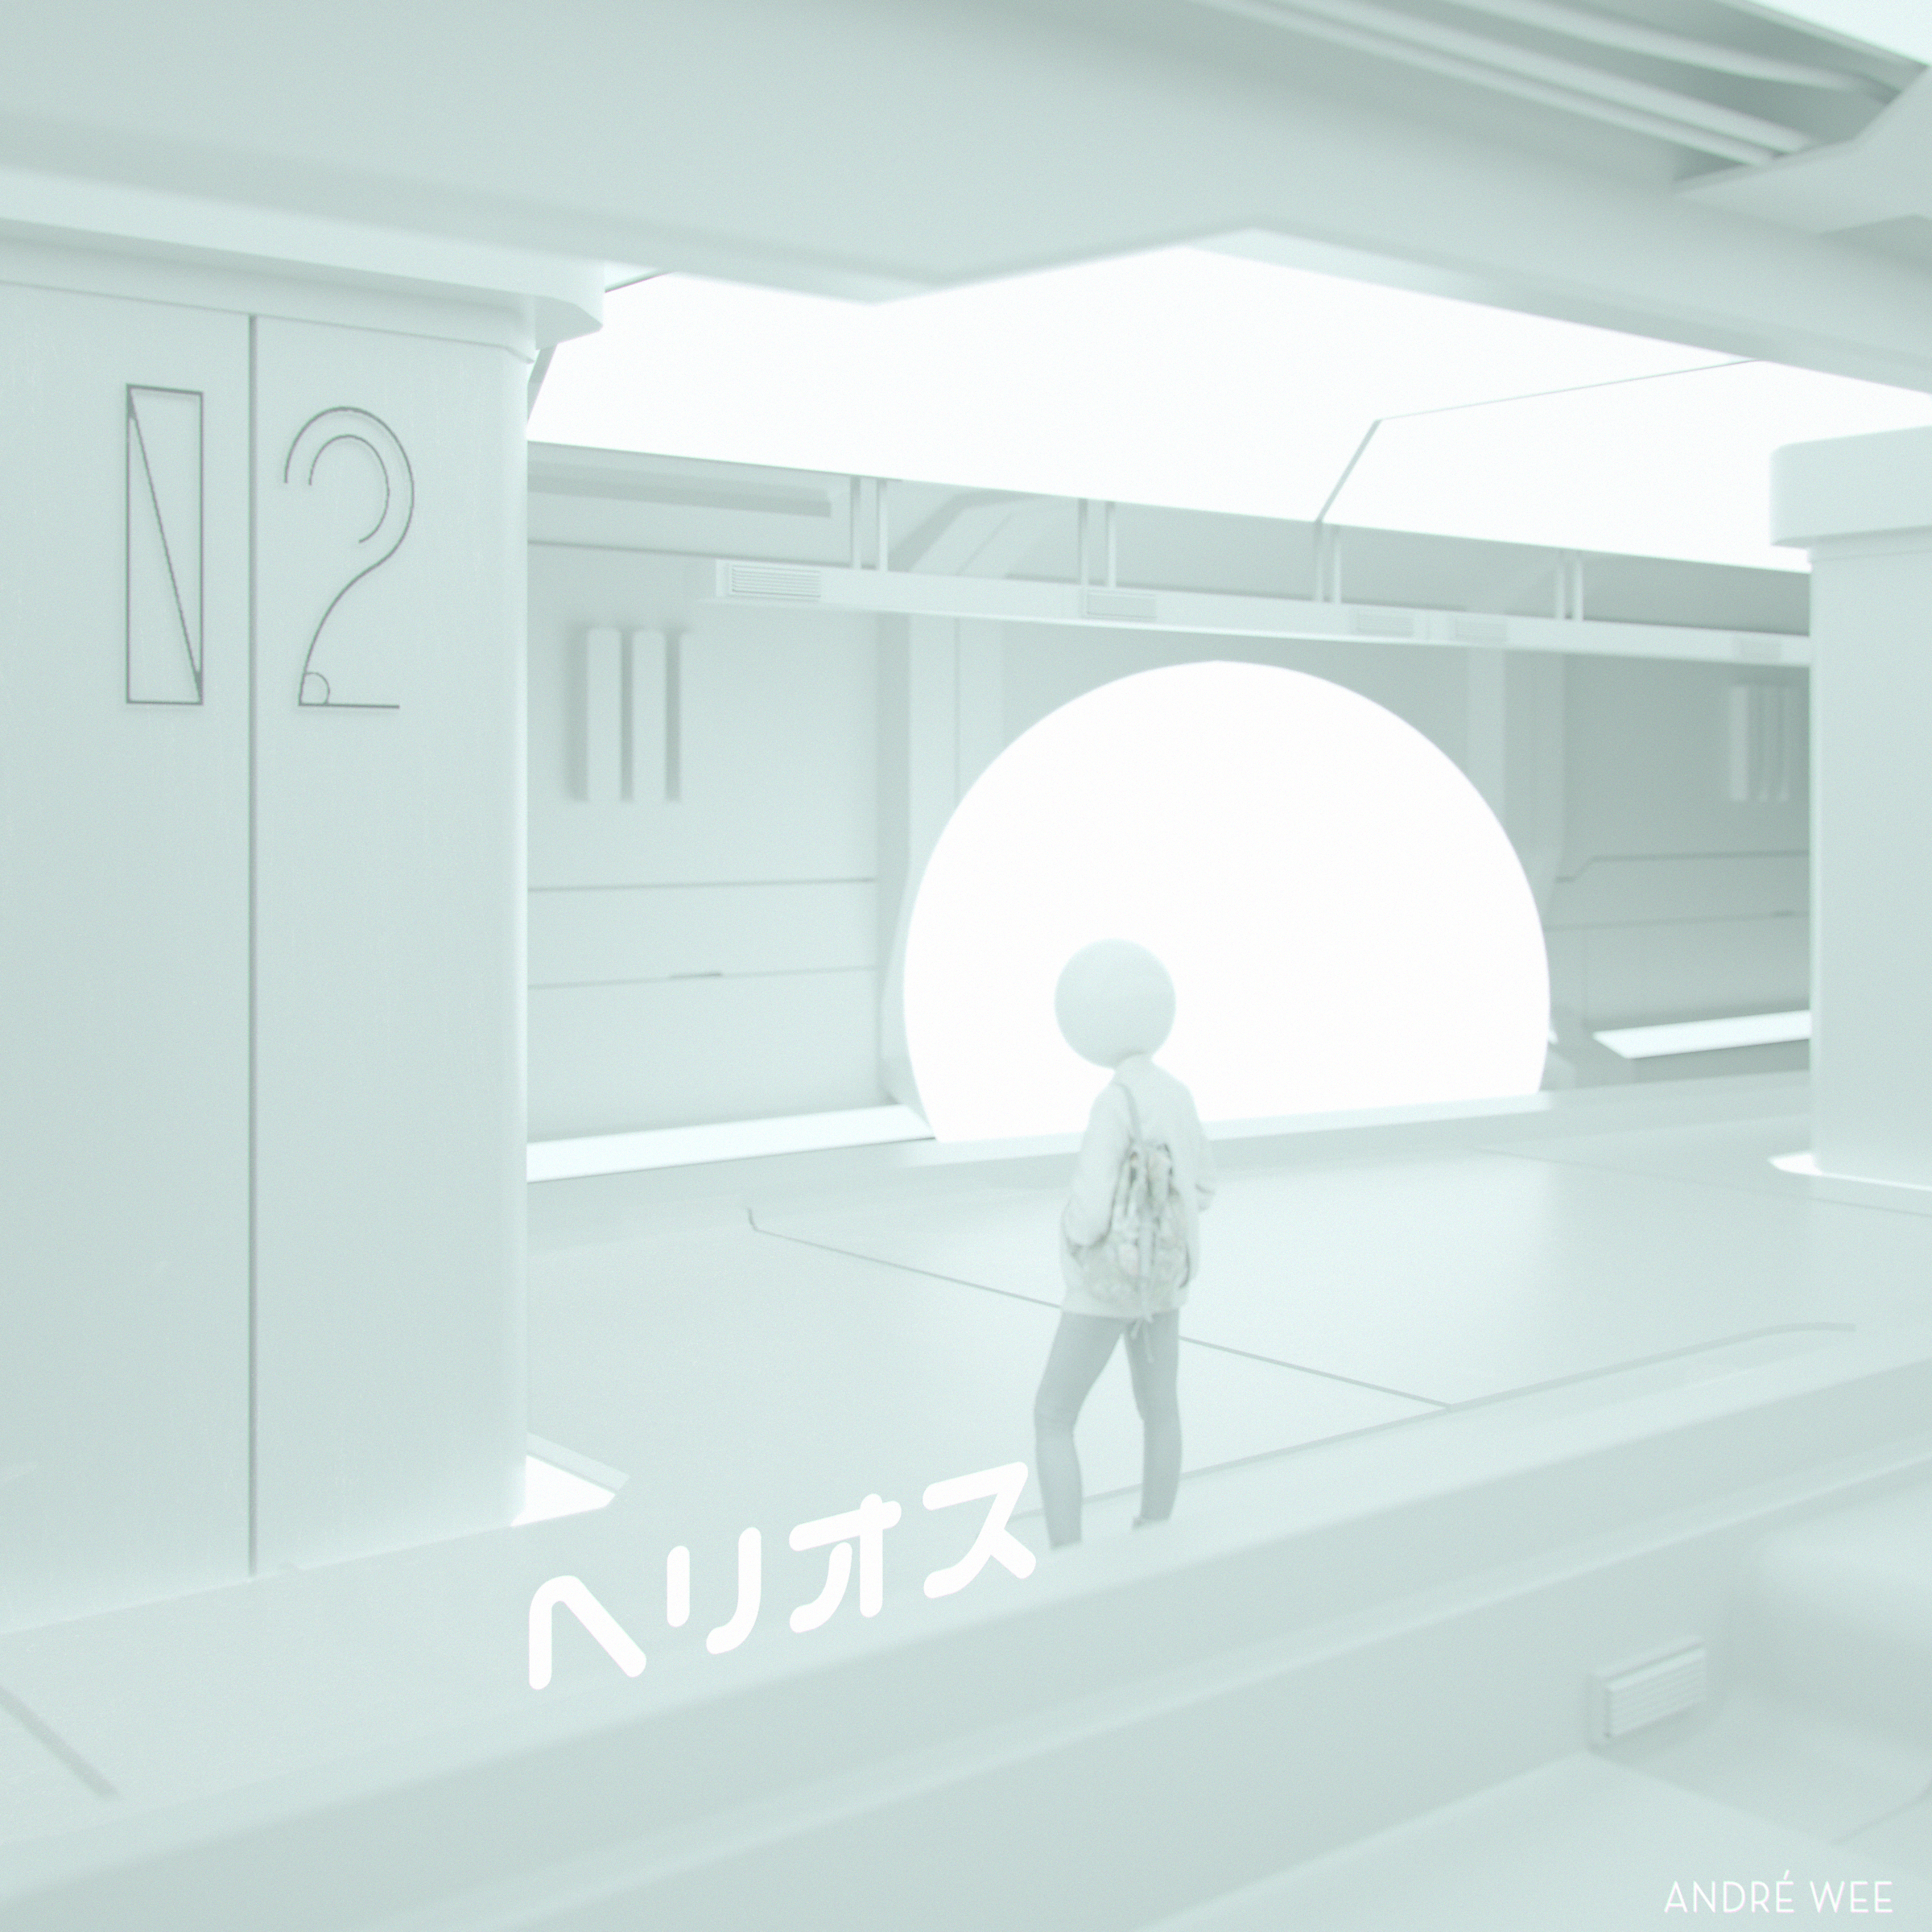 170718_Scifi_Clean_Station_09_Cover.jpg